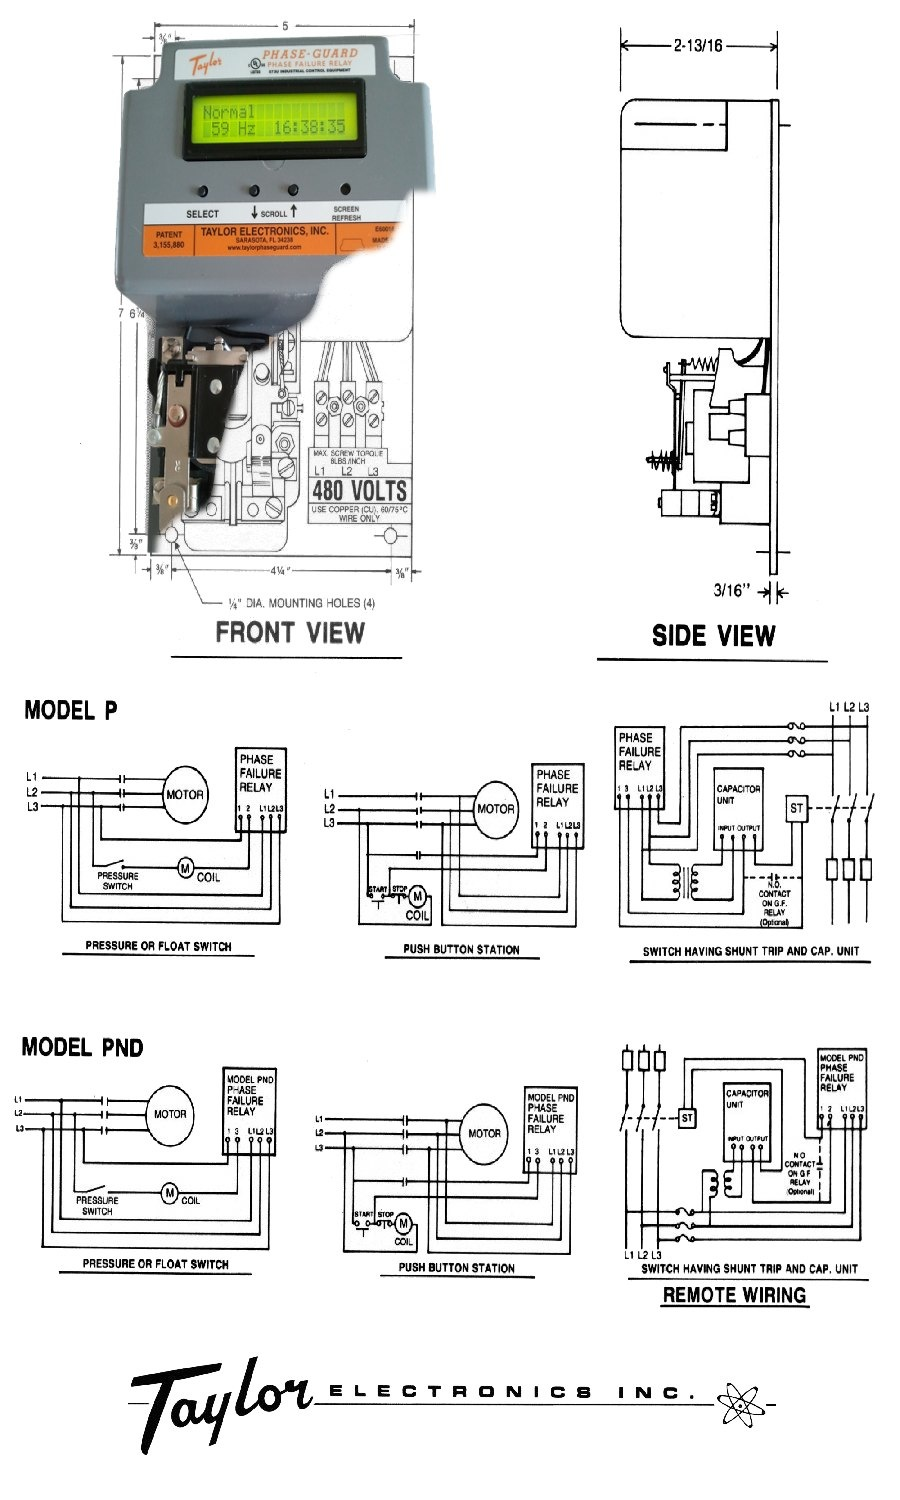 caterpillar forklift wiring diagram [ 900 x 1500 Pixel ]